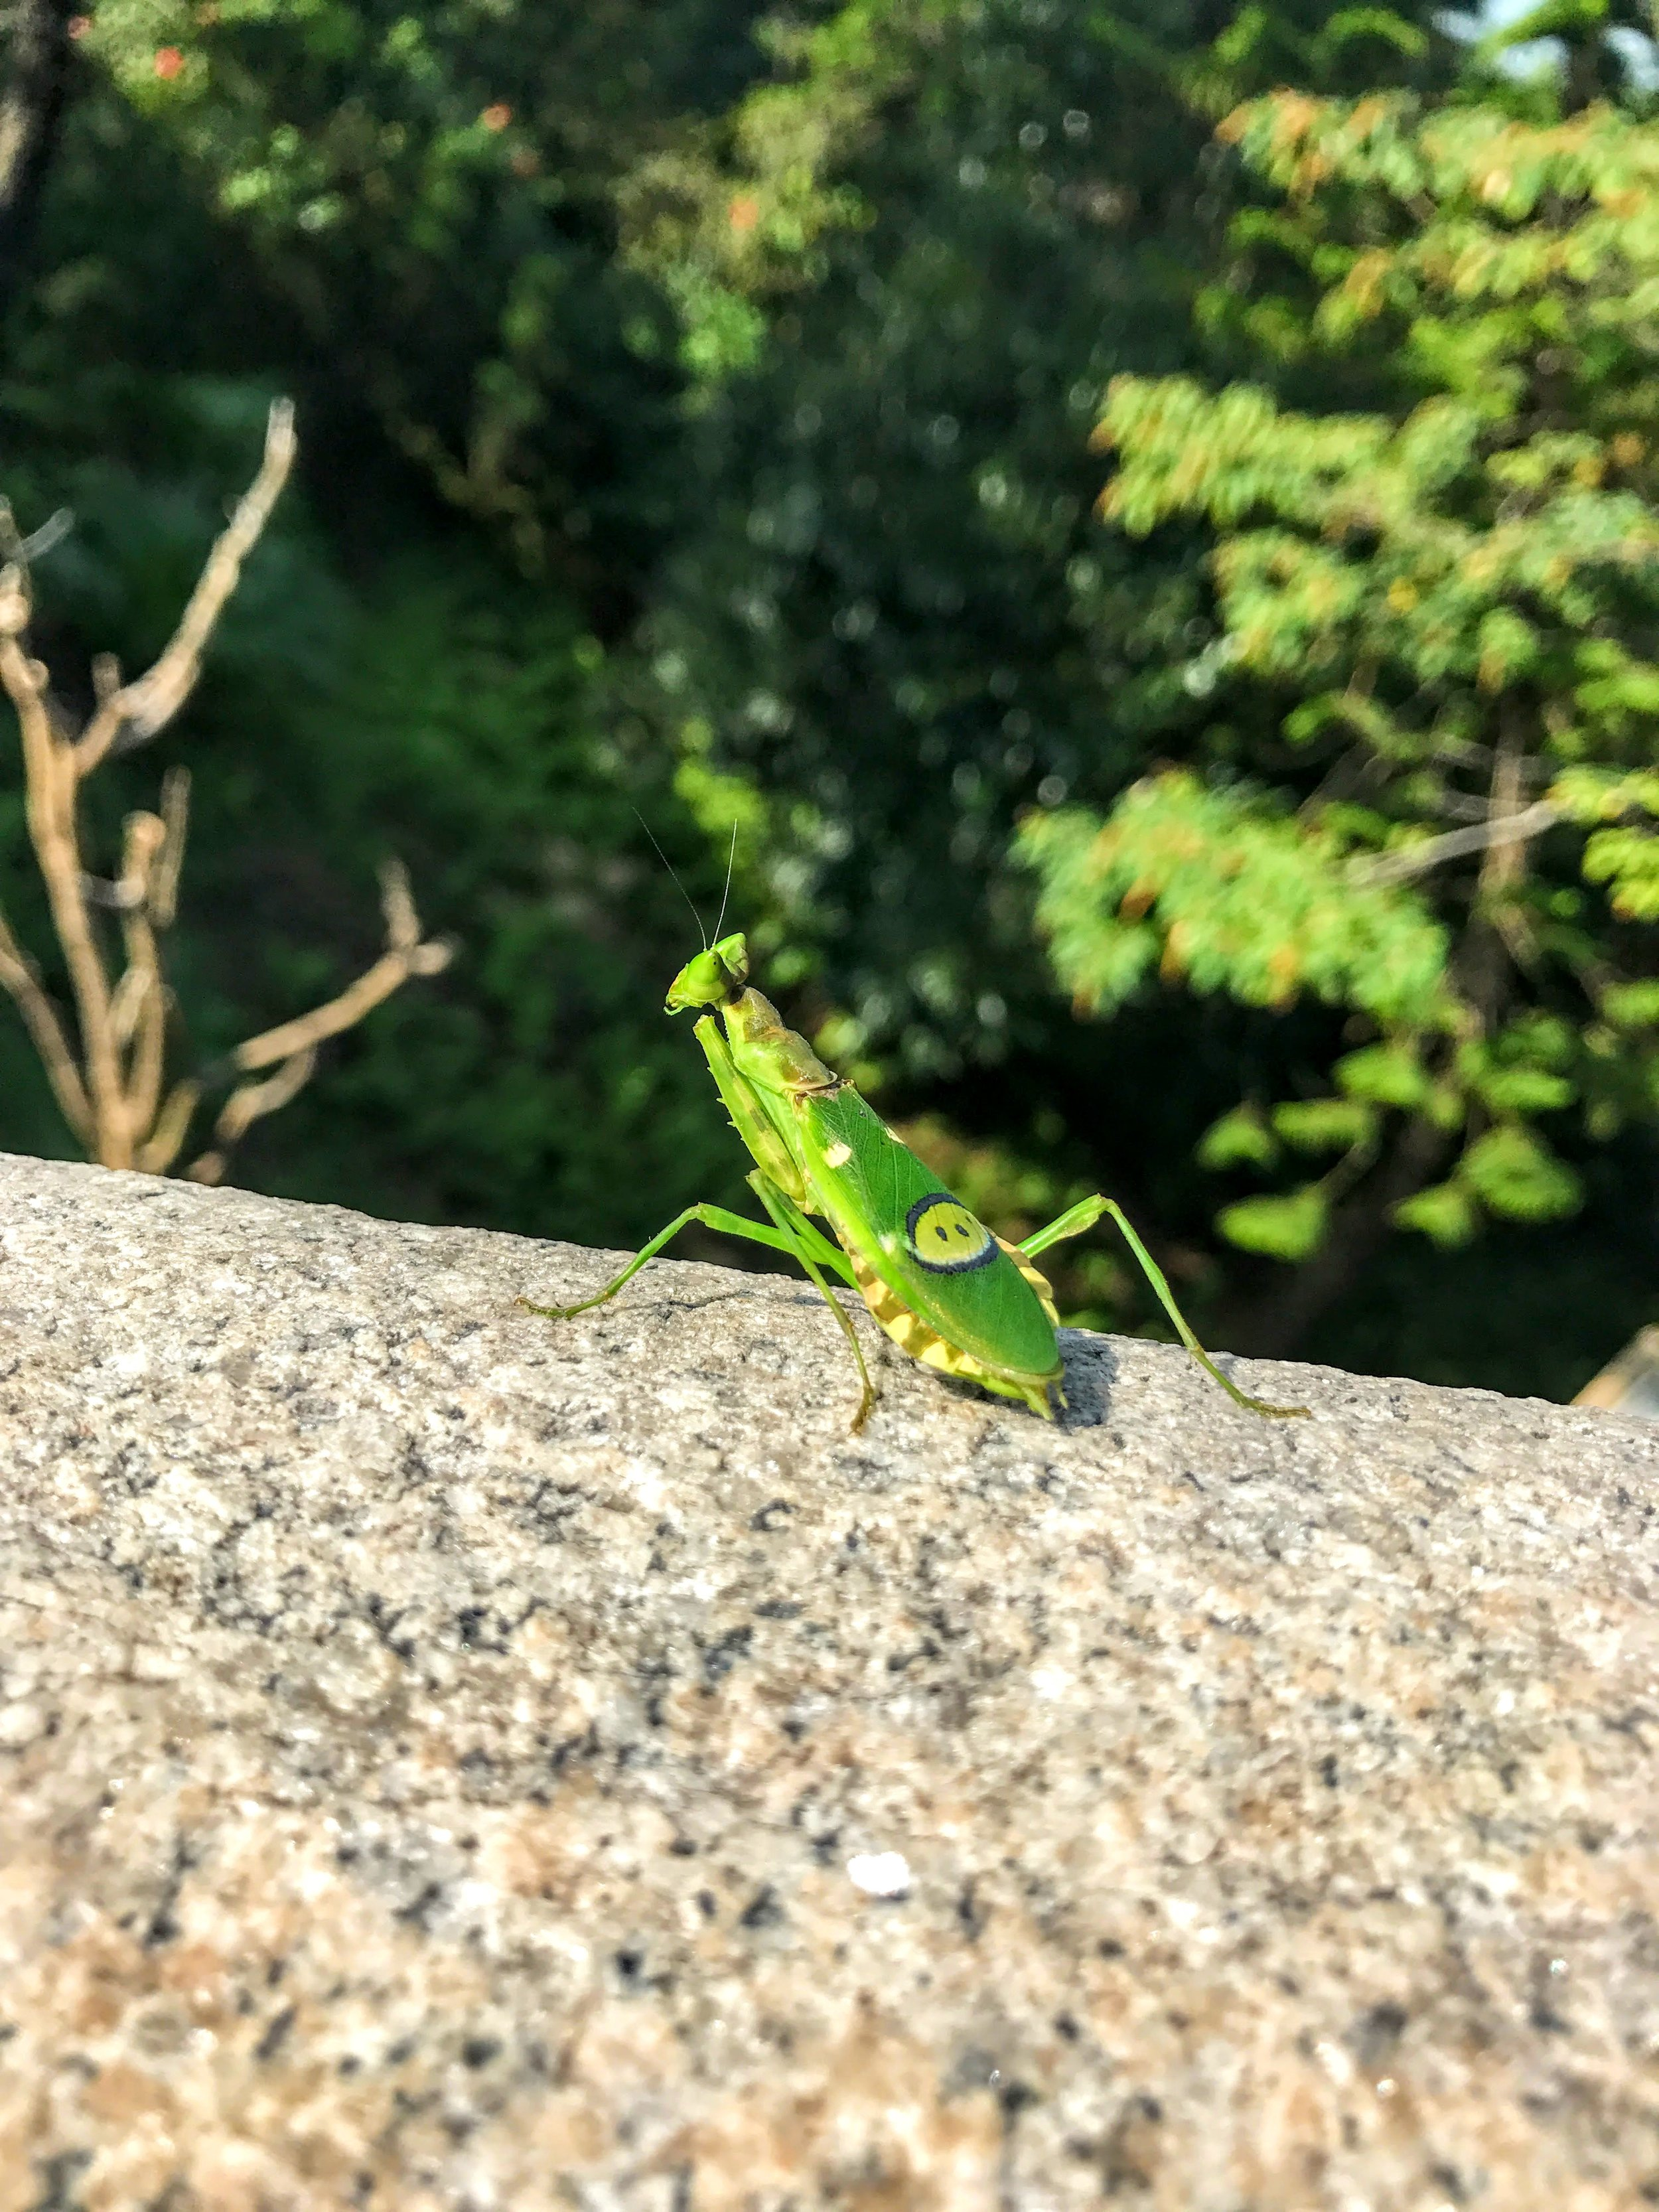 Emoji praying mantis // Hong Kong